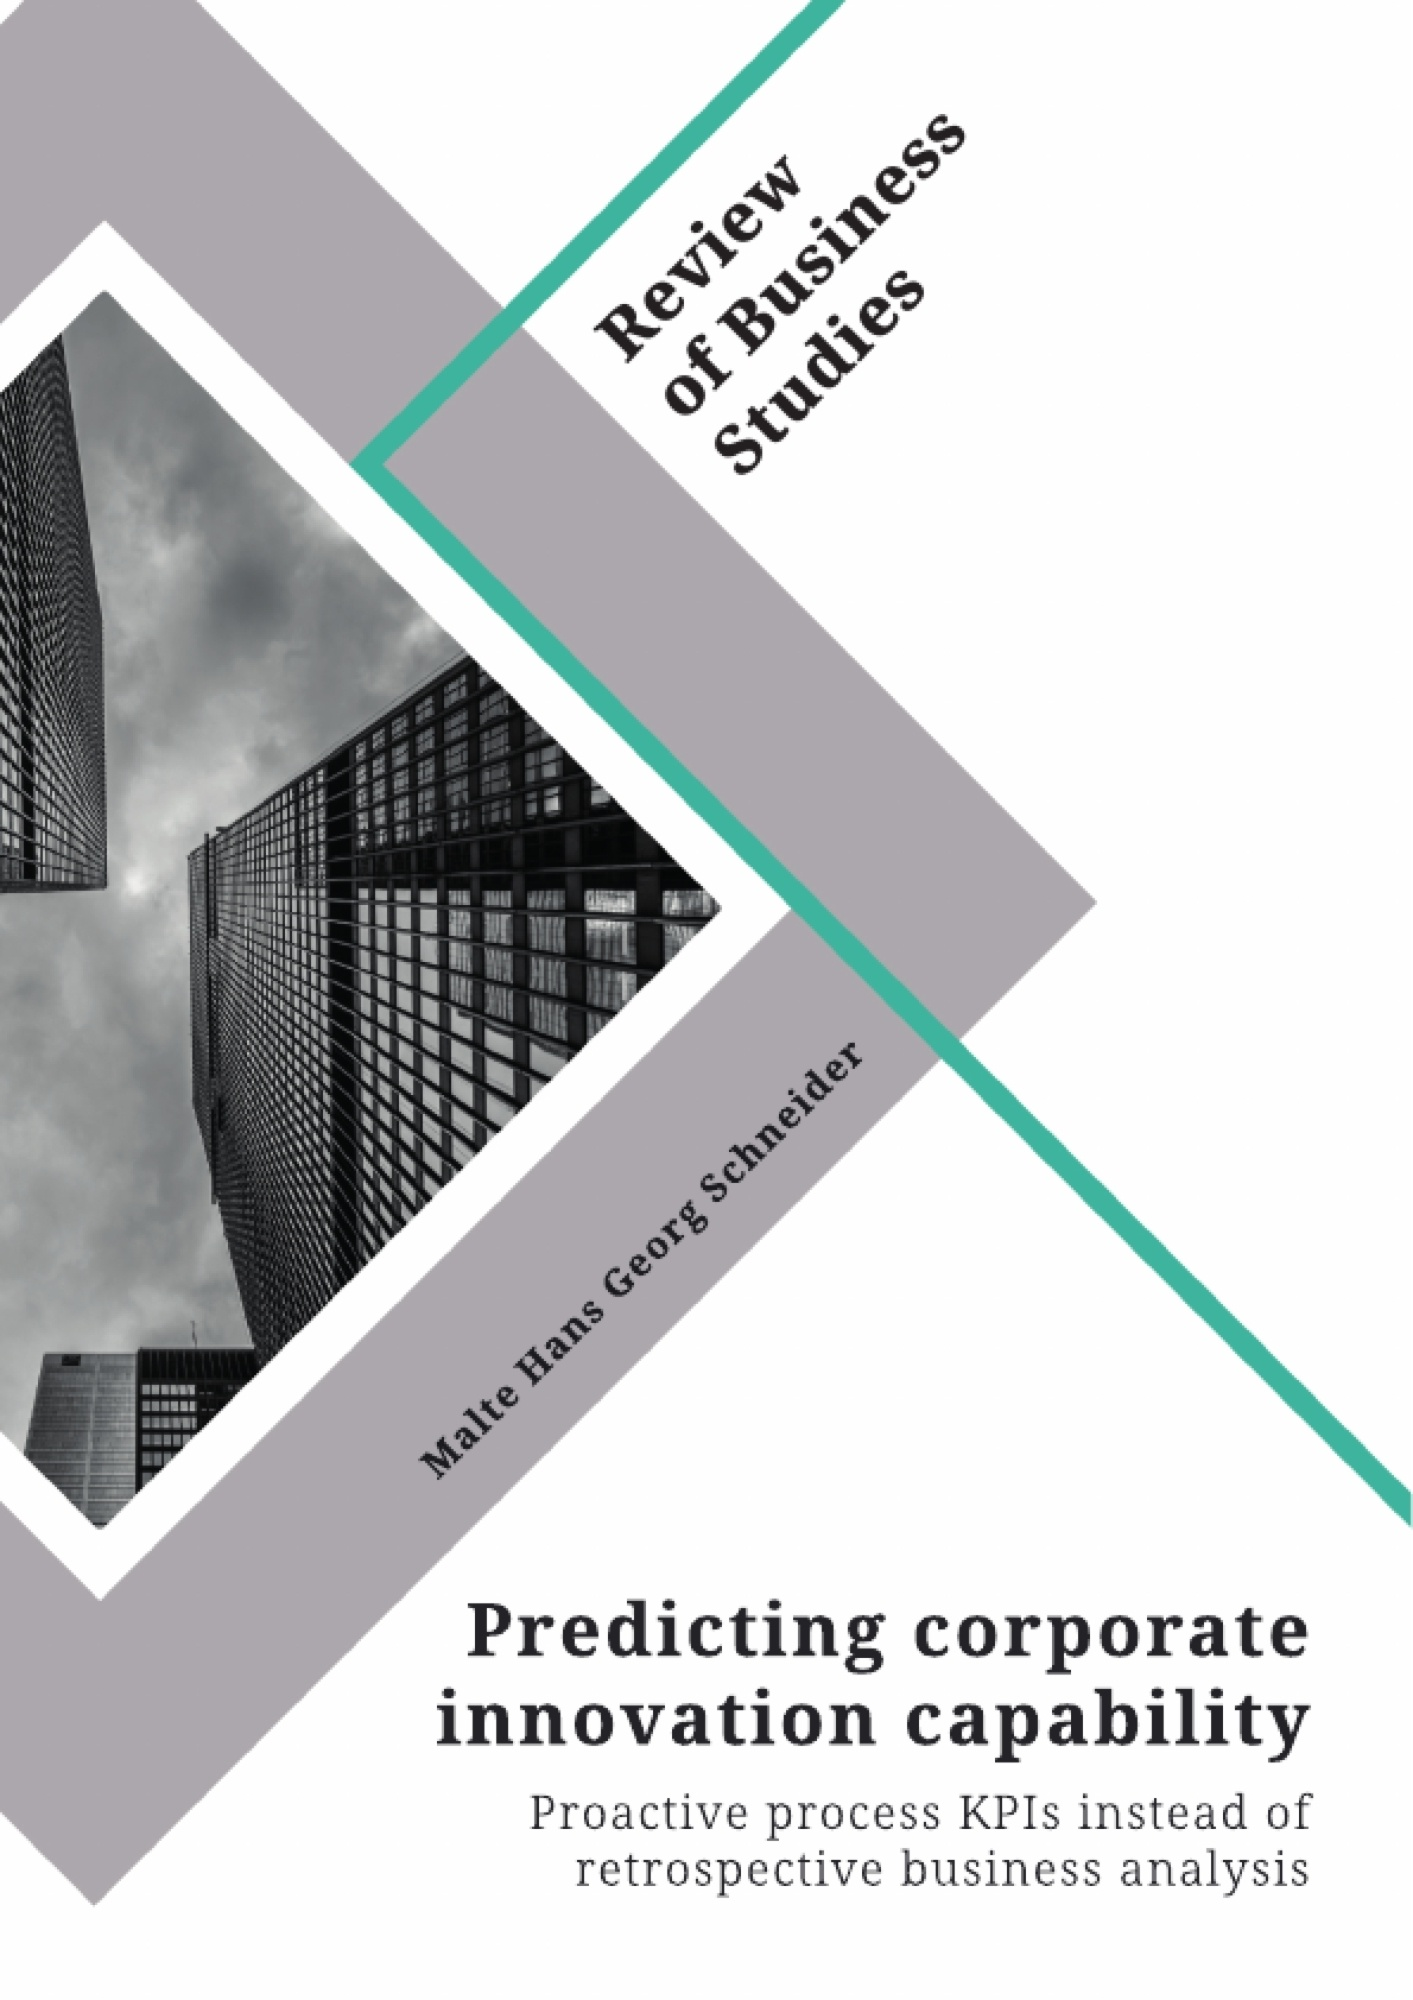 Title: Predicting corporate innovation capability. Proactive process KPIs instead of retrospective business analysis